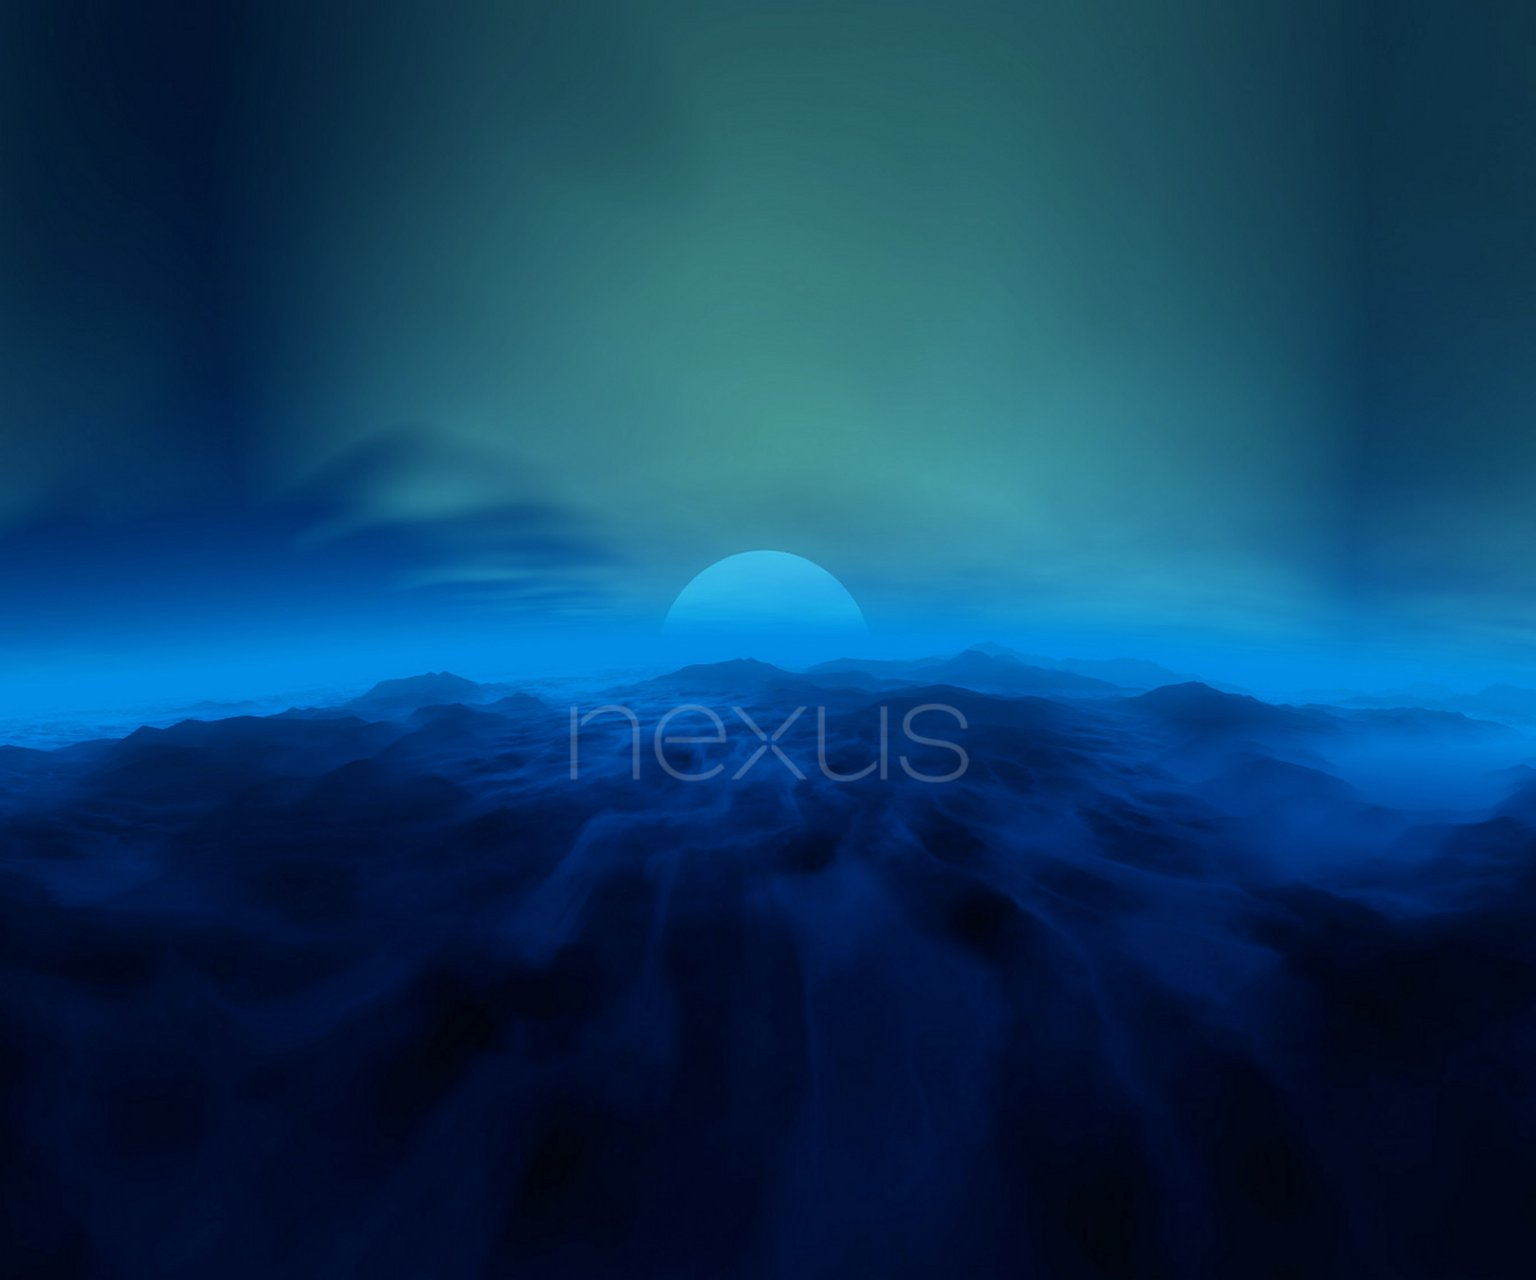 nexus live wallpaper for desktop - photo #23